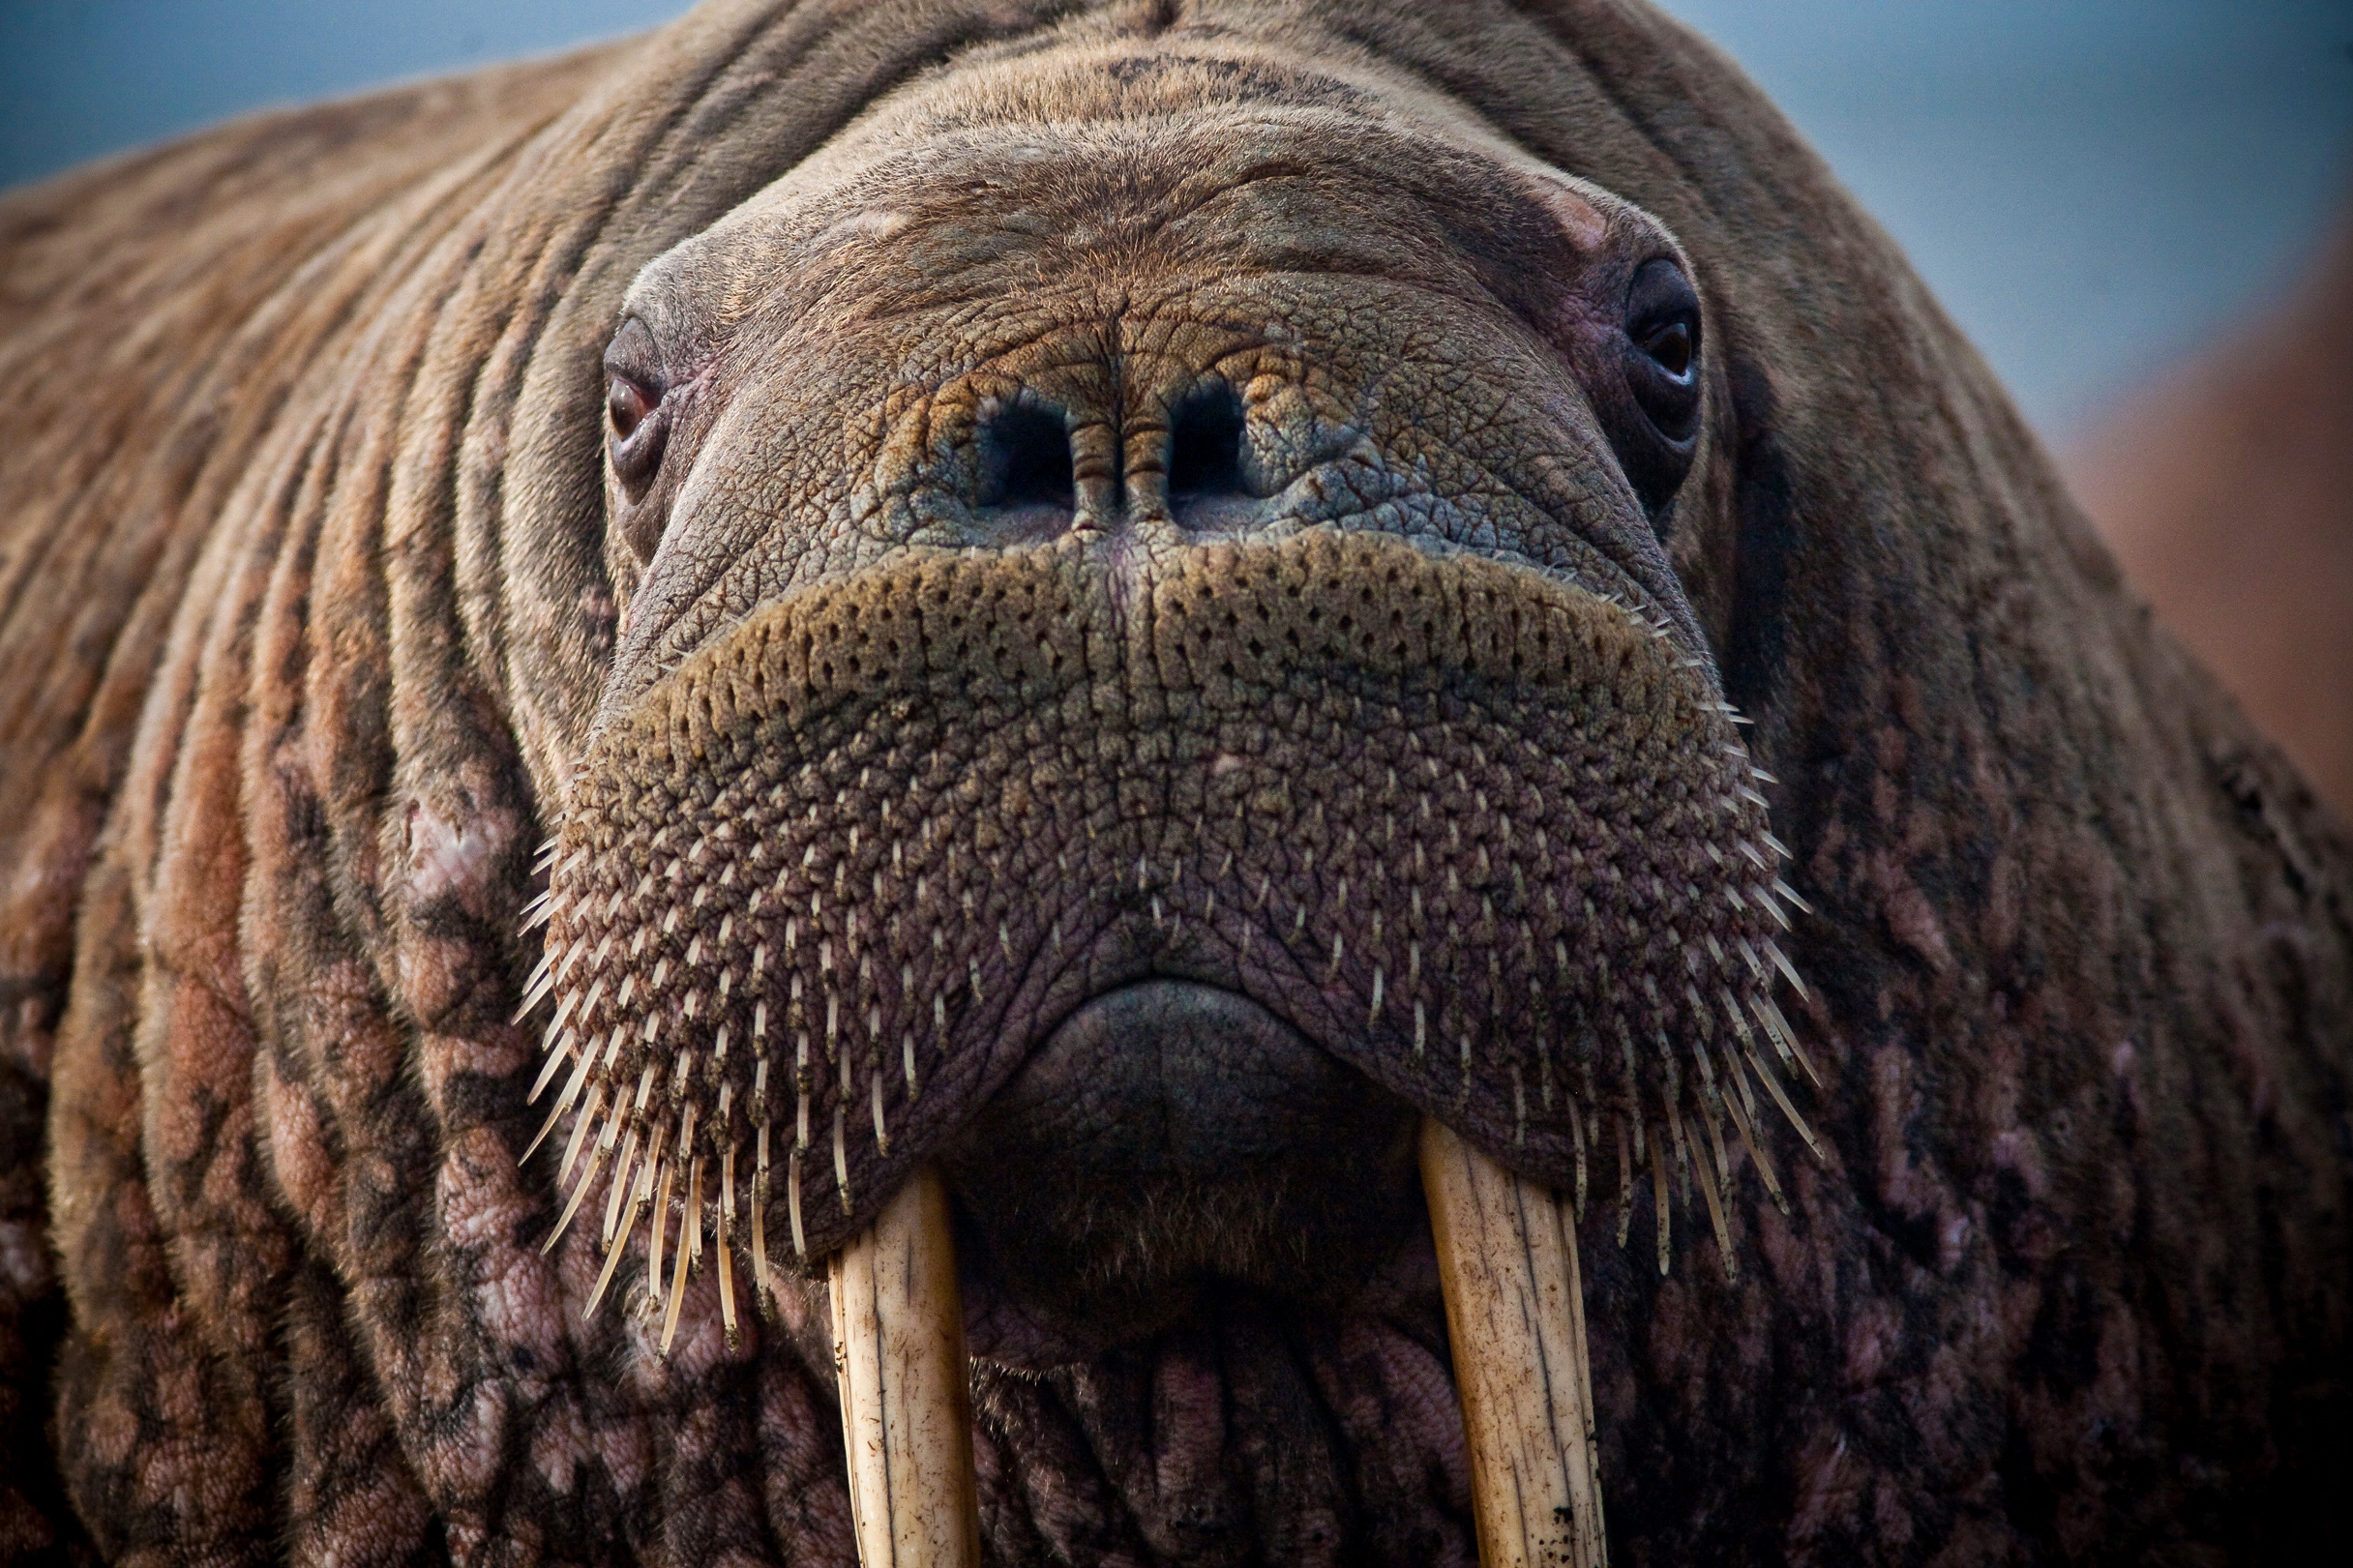 Close up of the face and tusks of a walrus.